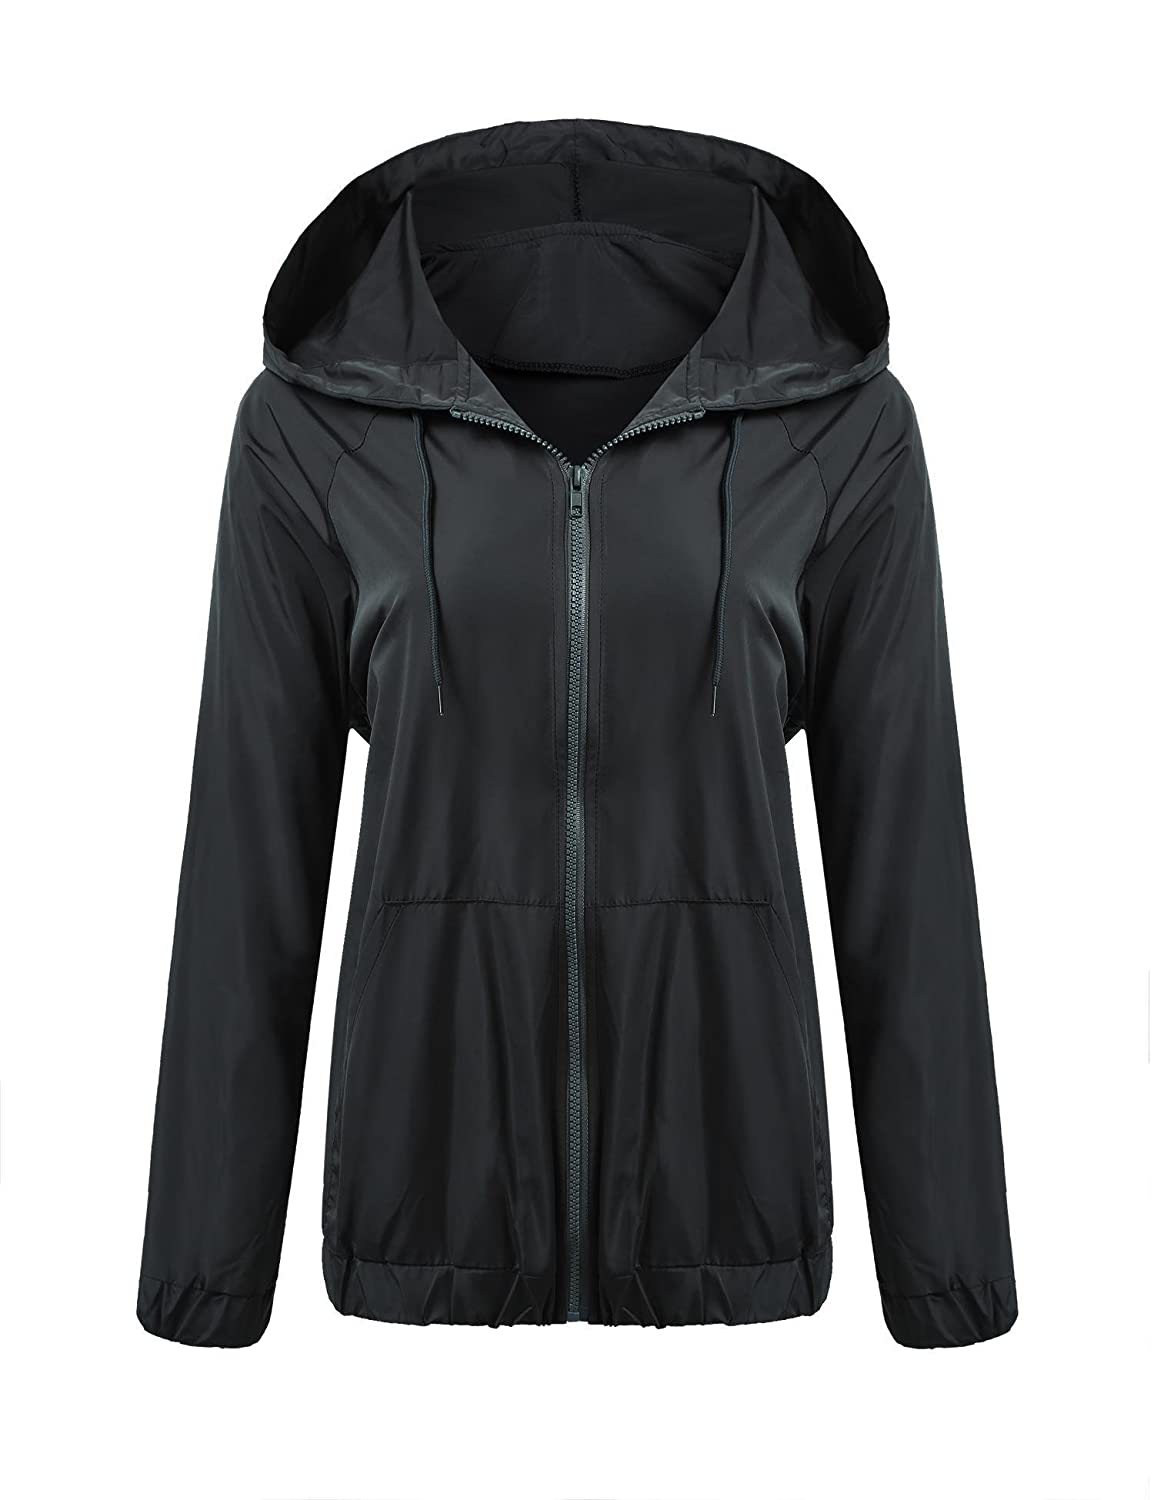 Meaneor Womens Rainwear Active Outdoor Hooded Cycling Packable and Lightweight Jacket *MAH005320